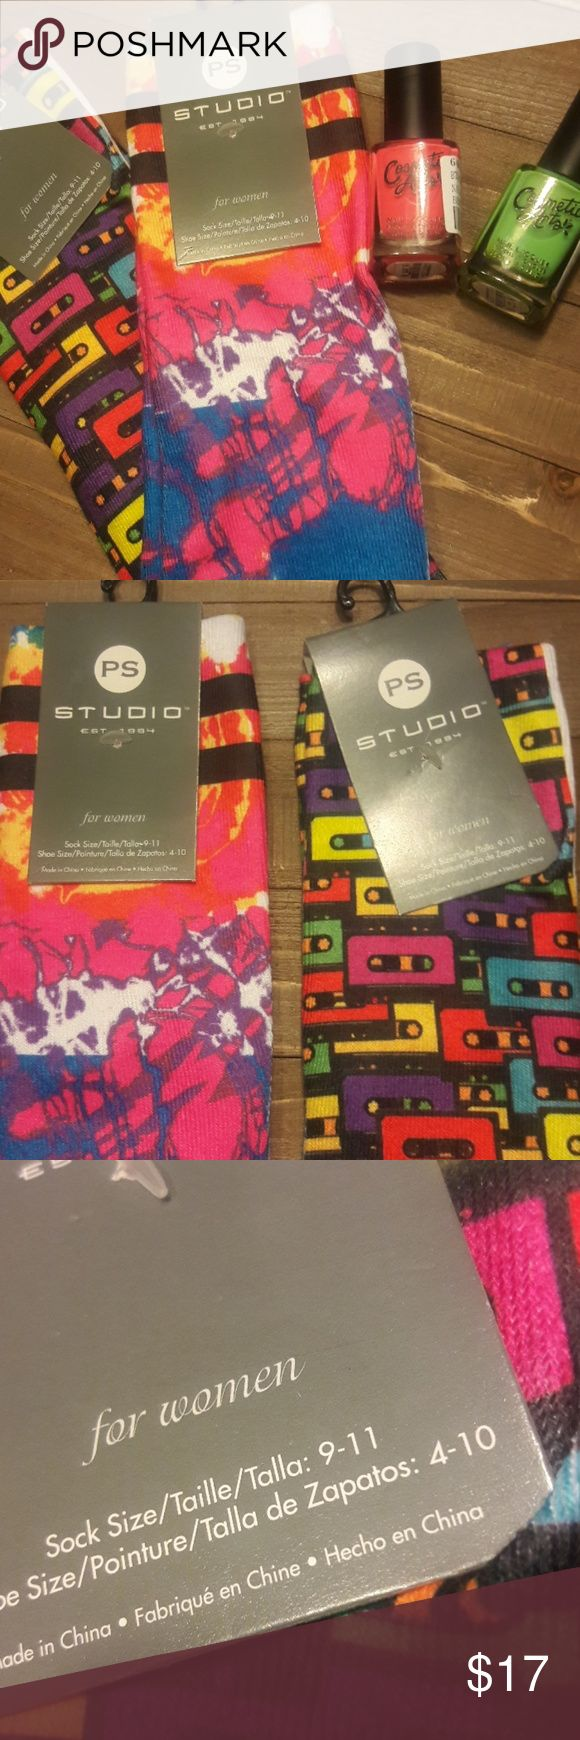 Foot loose bundle💃 2 pairs of women's  funky socks! Shoe size 4-10 2 bottles of fluorescent nail polish never opened! Accessories